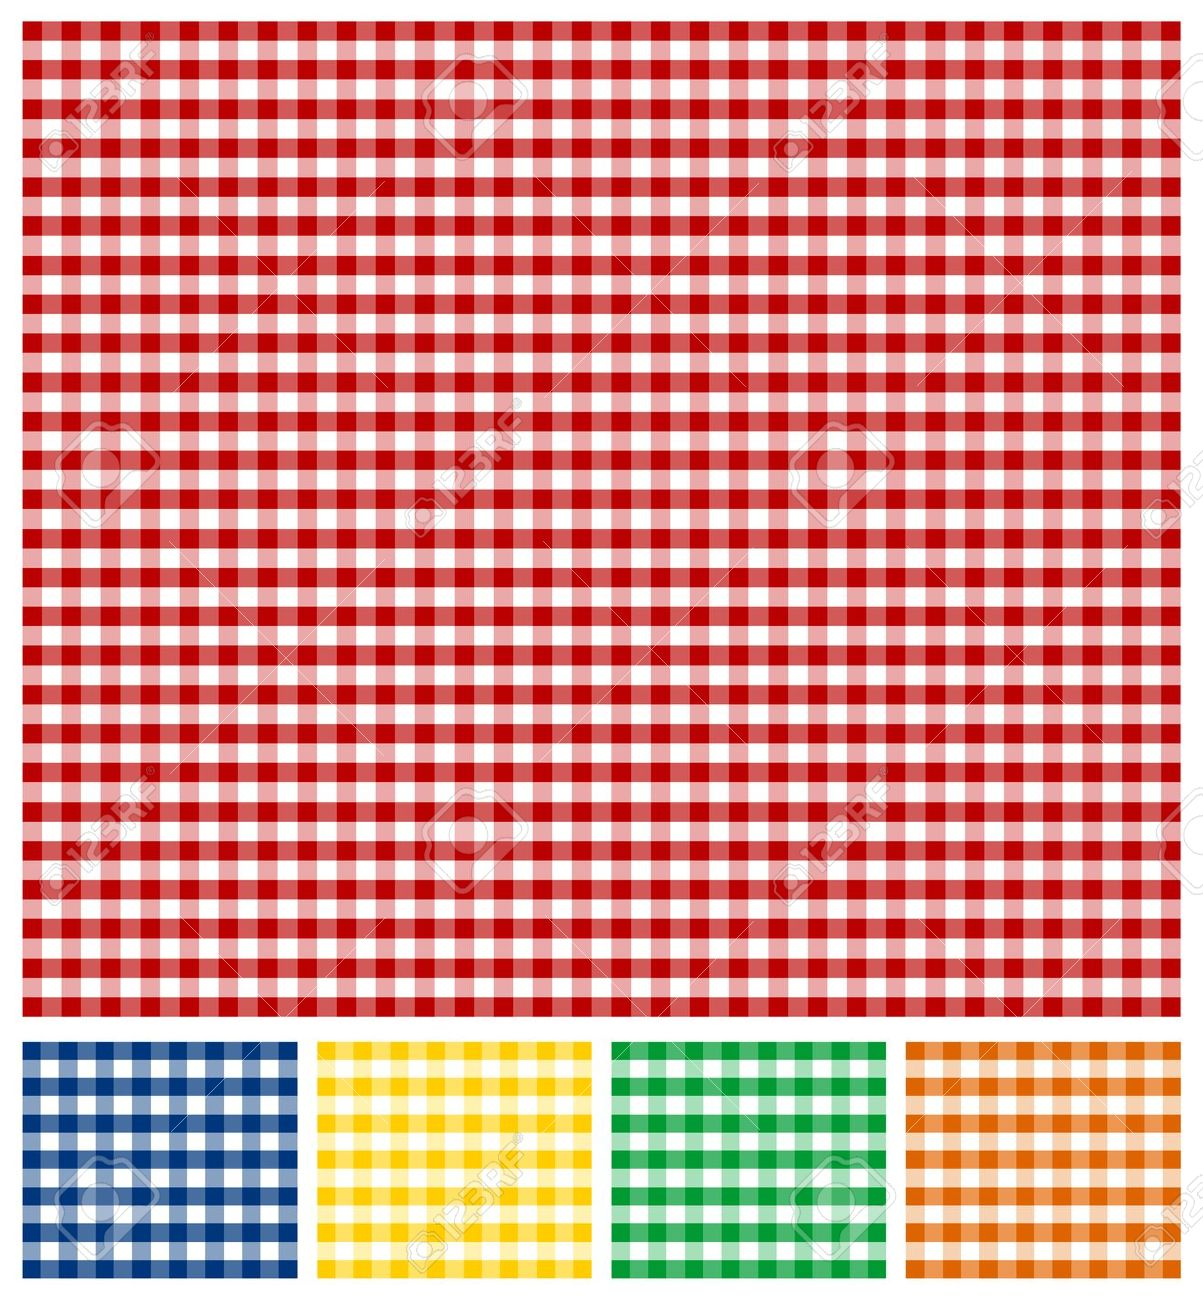 Free clipart red and green gingham plaid.